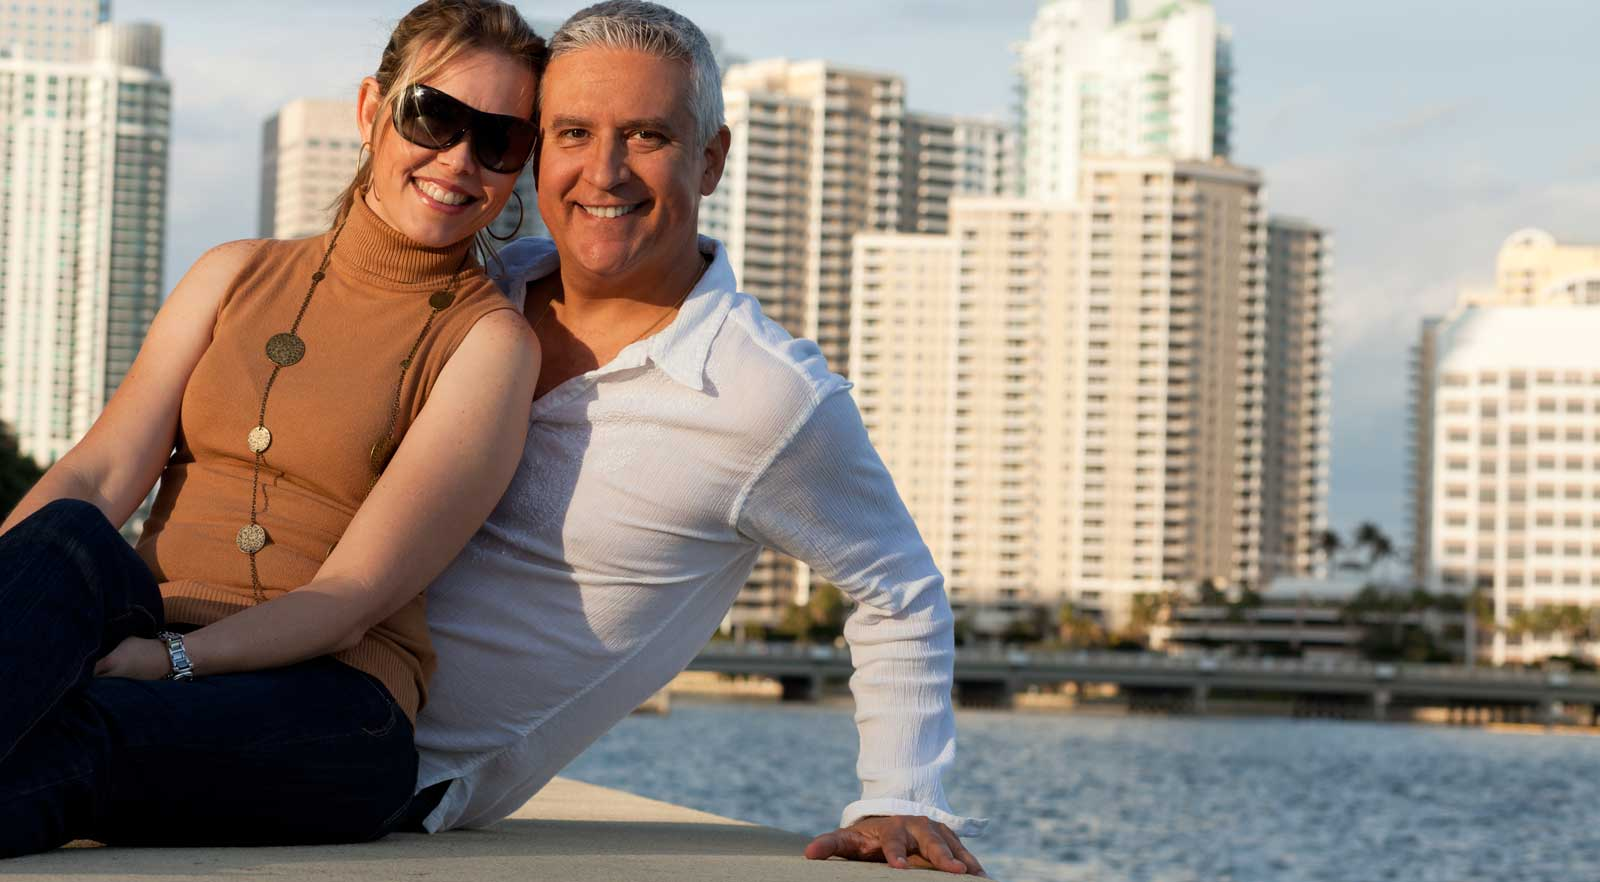 Dating for singles over 50